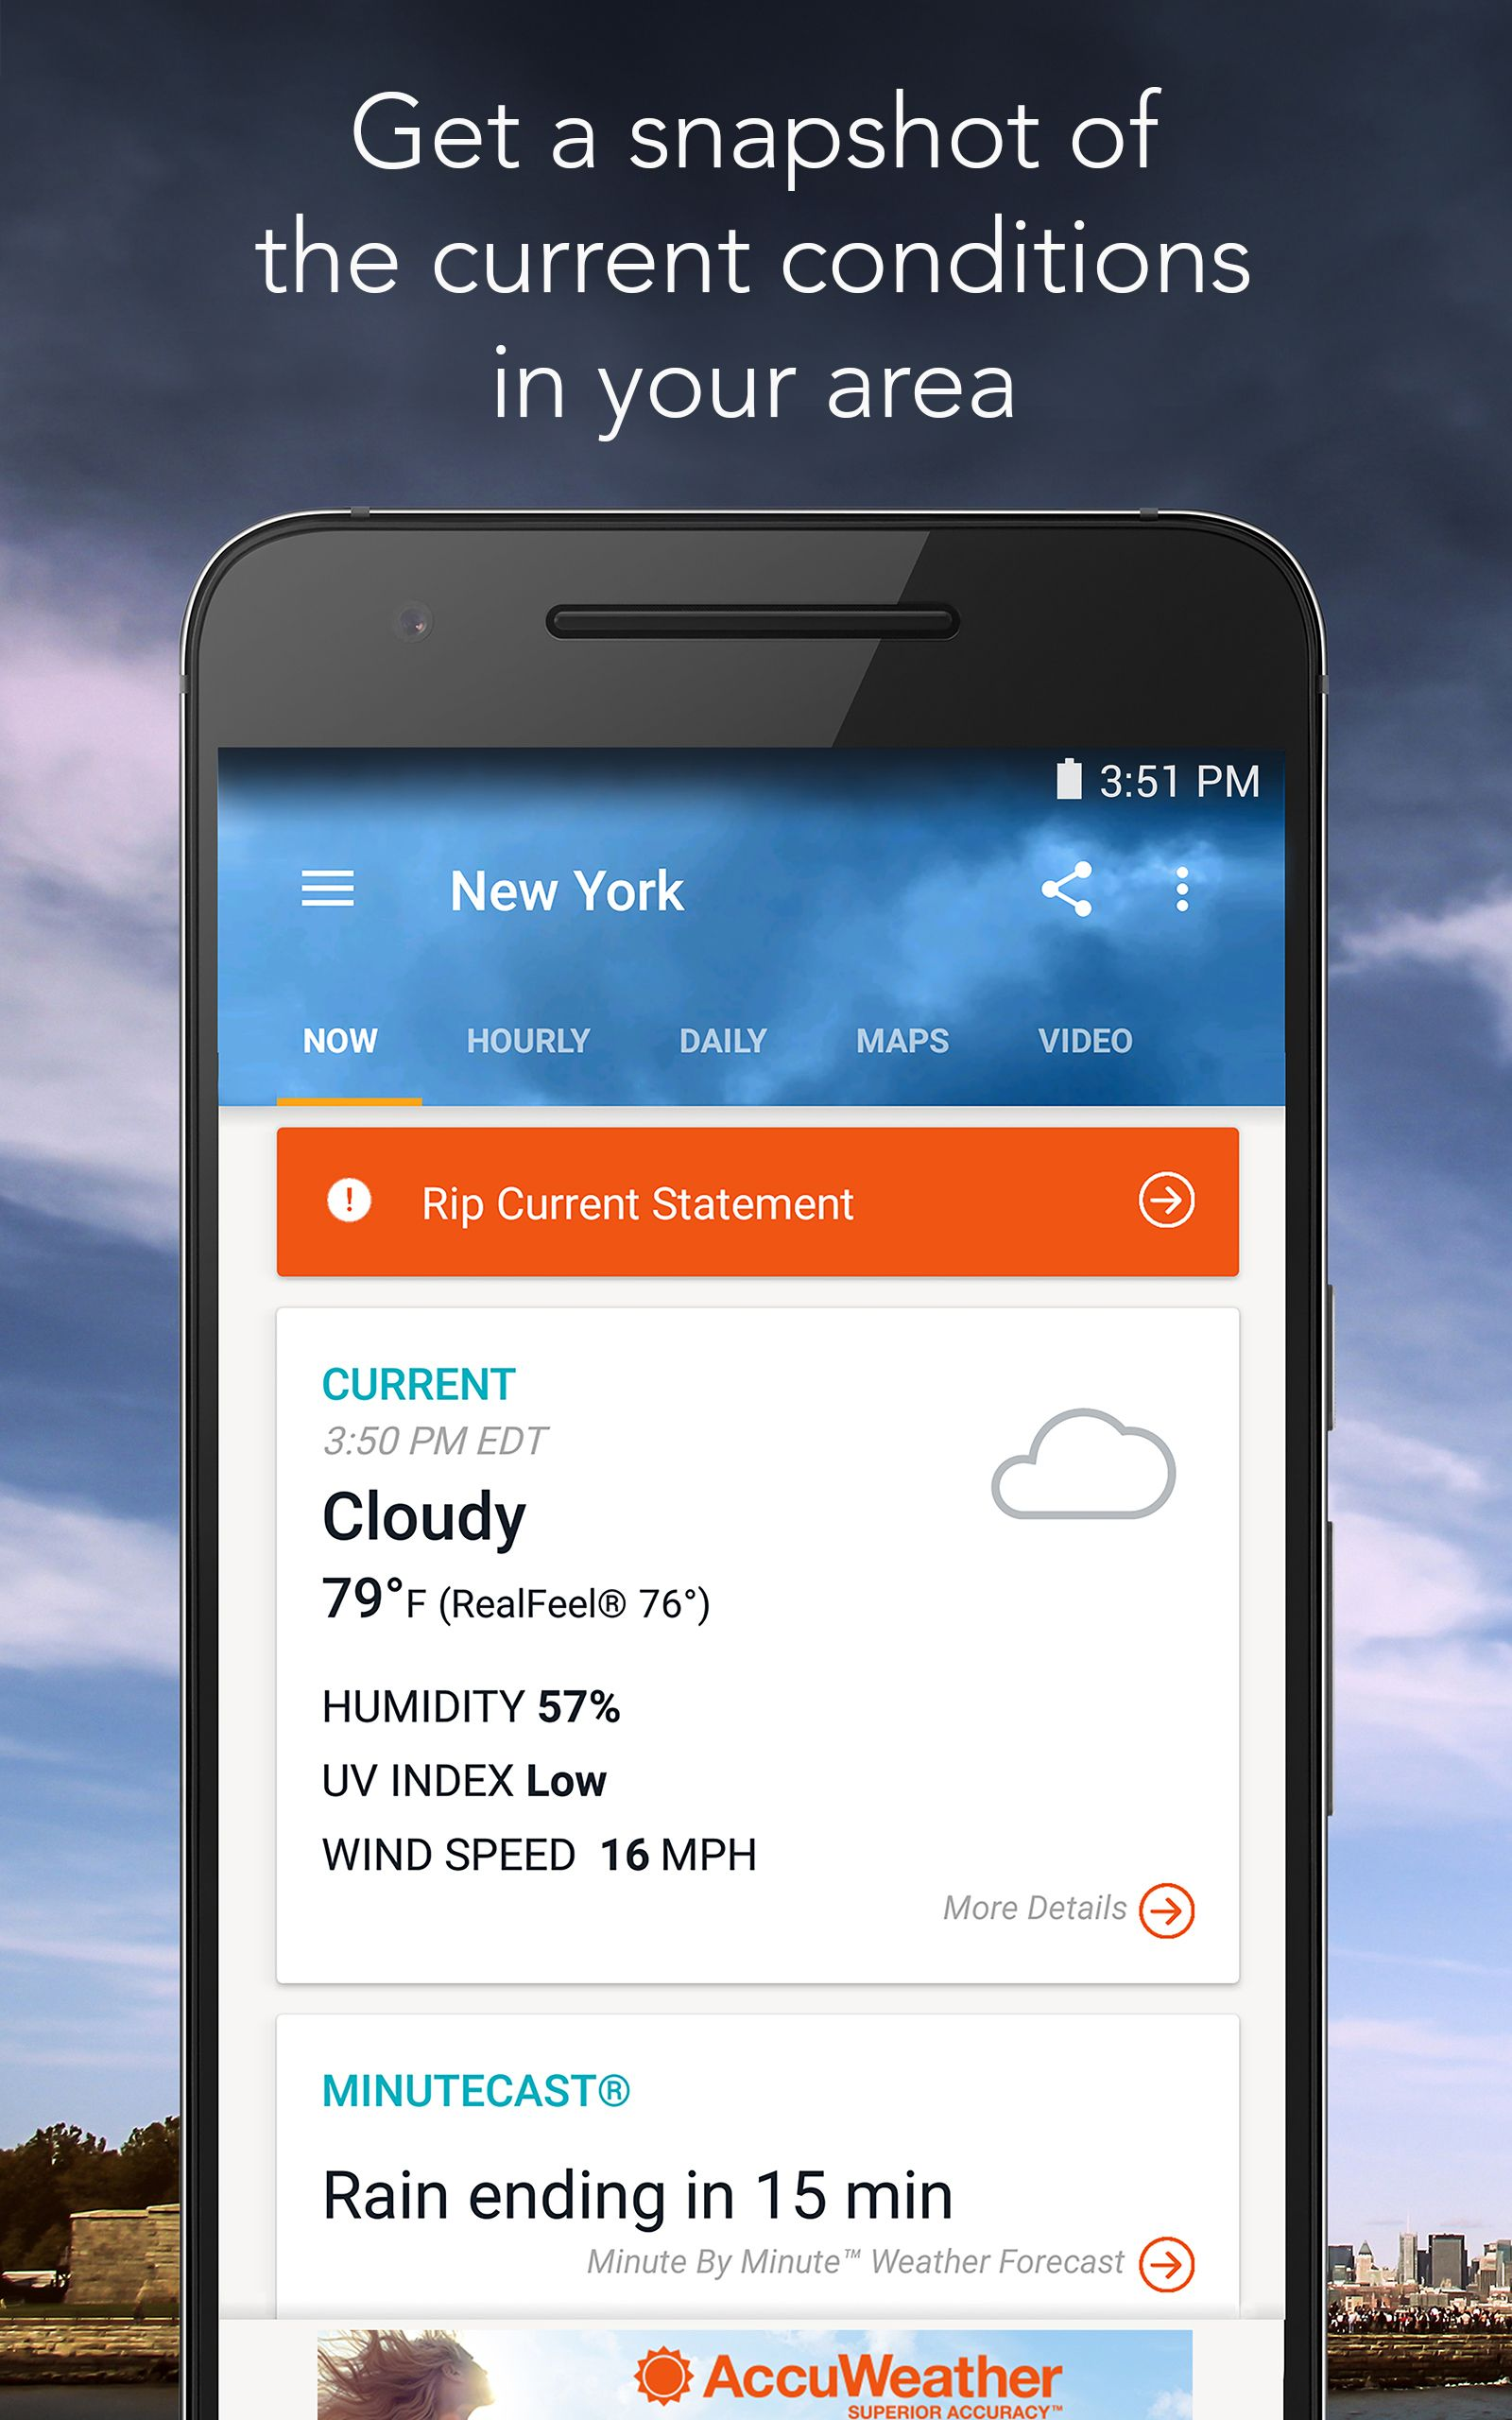 AccuWeather with Superior Accuracy AccuWeather,